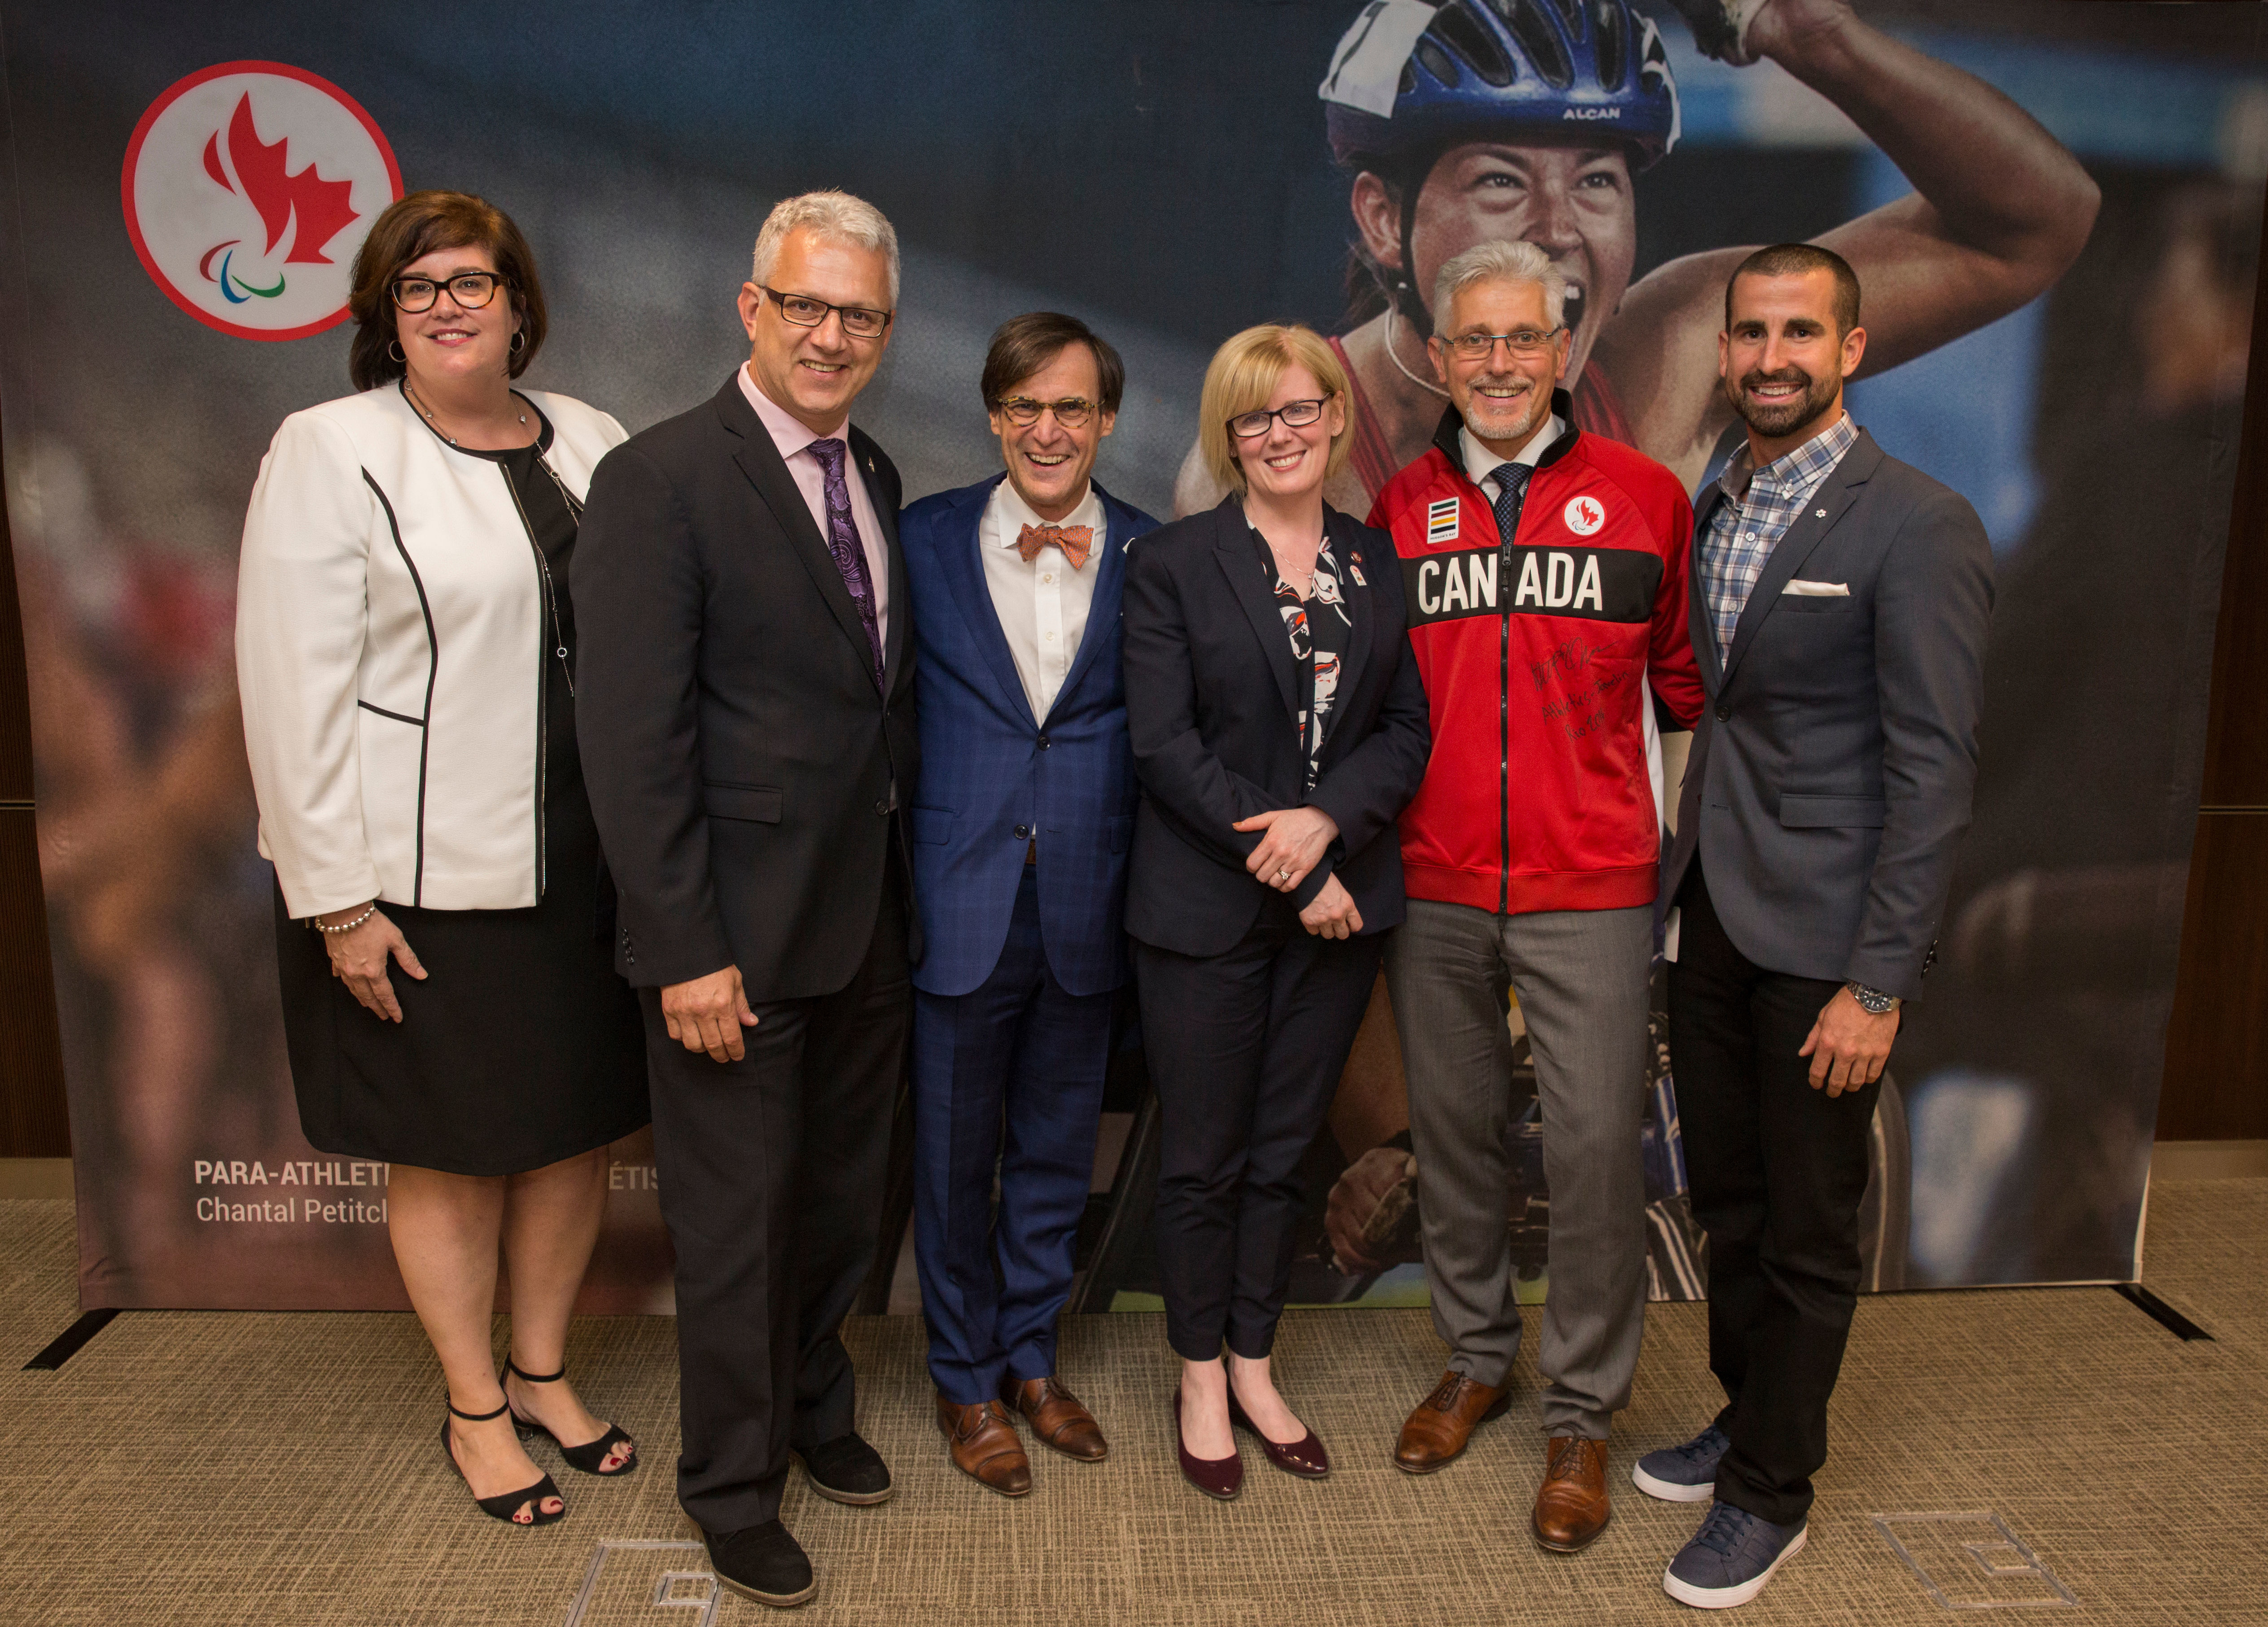 Pfizer employees, Paralympians, and the CPC President